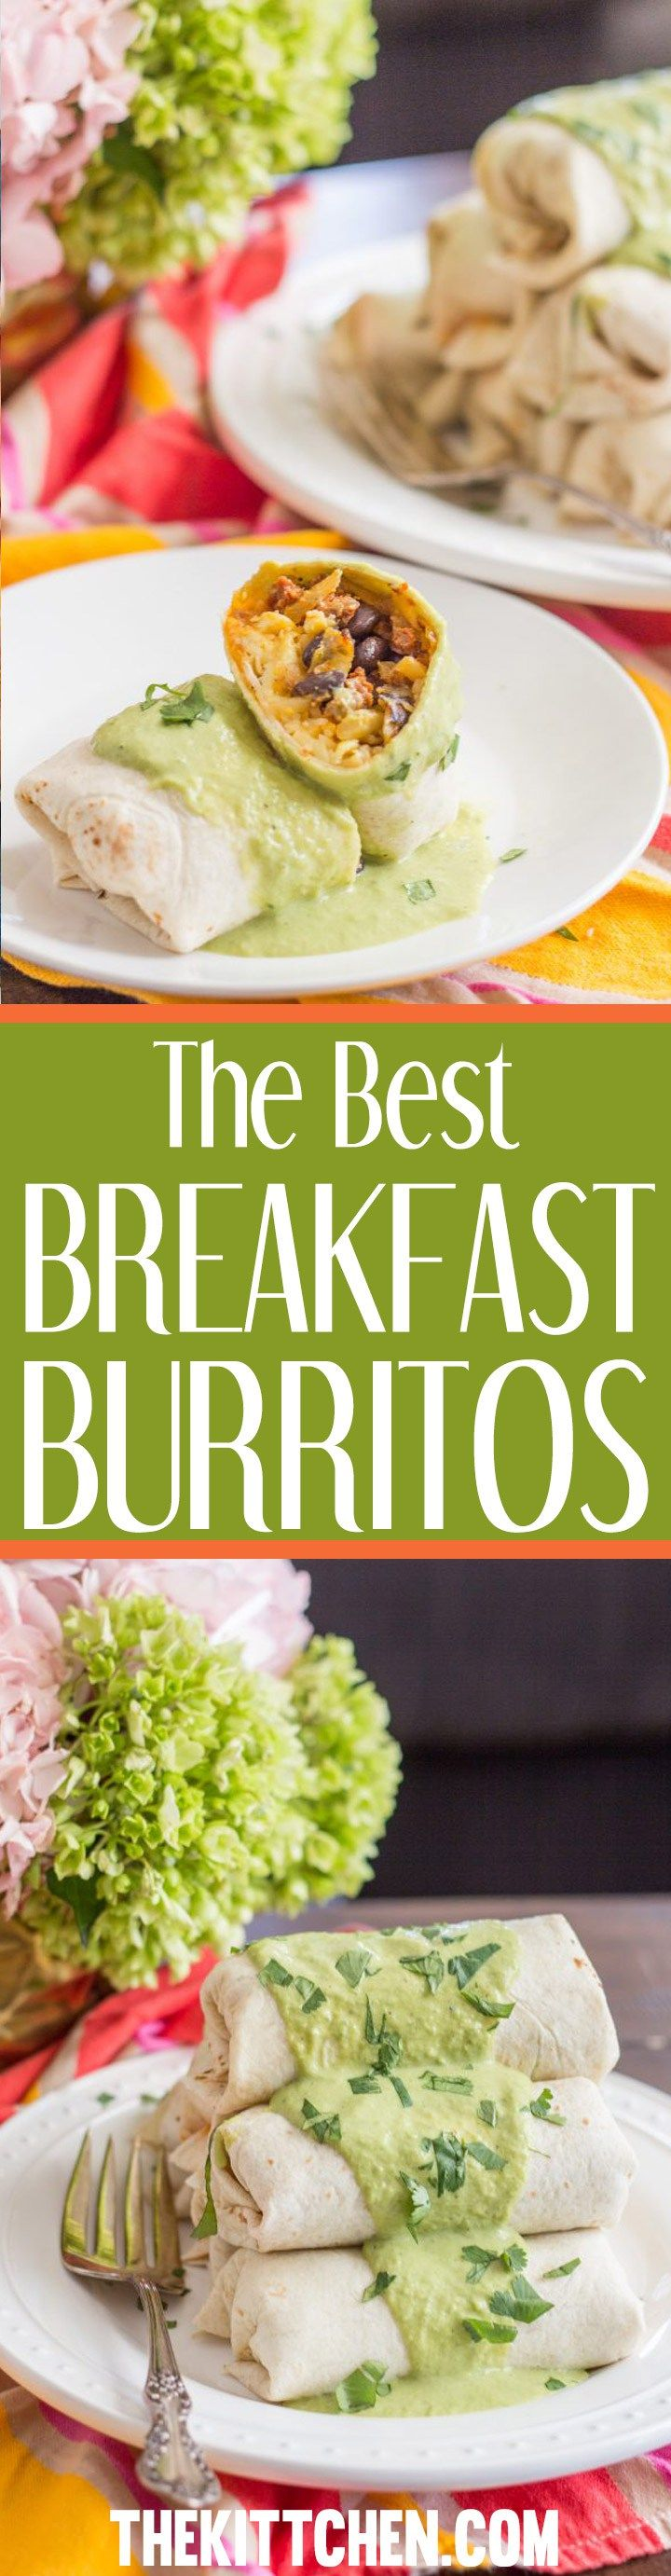 These are the best breakfast burritos that I have ever had, and I love breakfast burritos. I added all of my favorite breakfast foods: crumbled chorizo with sautéed onions, hash browns, black beans, scrambled eggs, and cheese. Then I poured homemade poblano cream sauce on top and added a sprinkle of chopped cilantro. What more could you want on a Saturday morning?